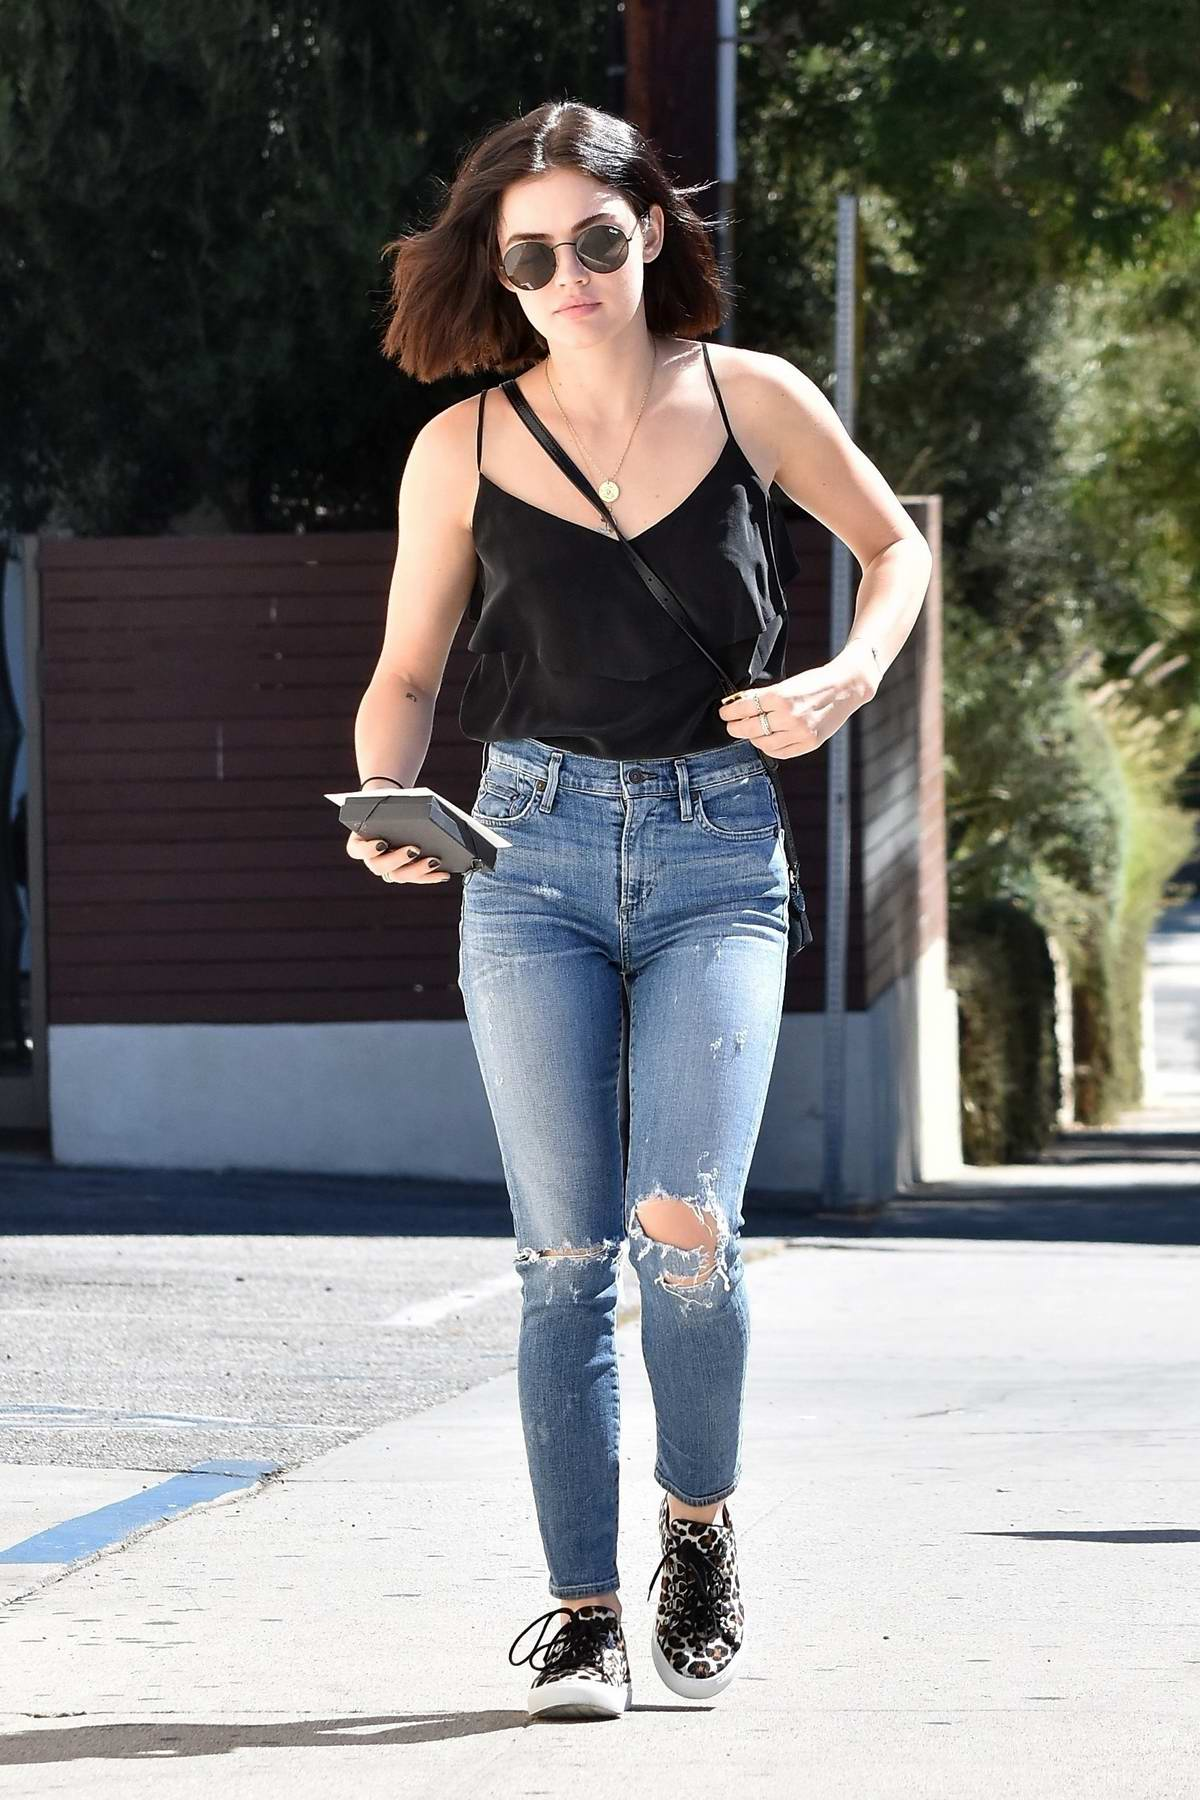 Lucy Hale steps out for lunch in a black top and ripped jeans in Los Angeles